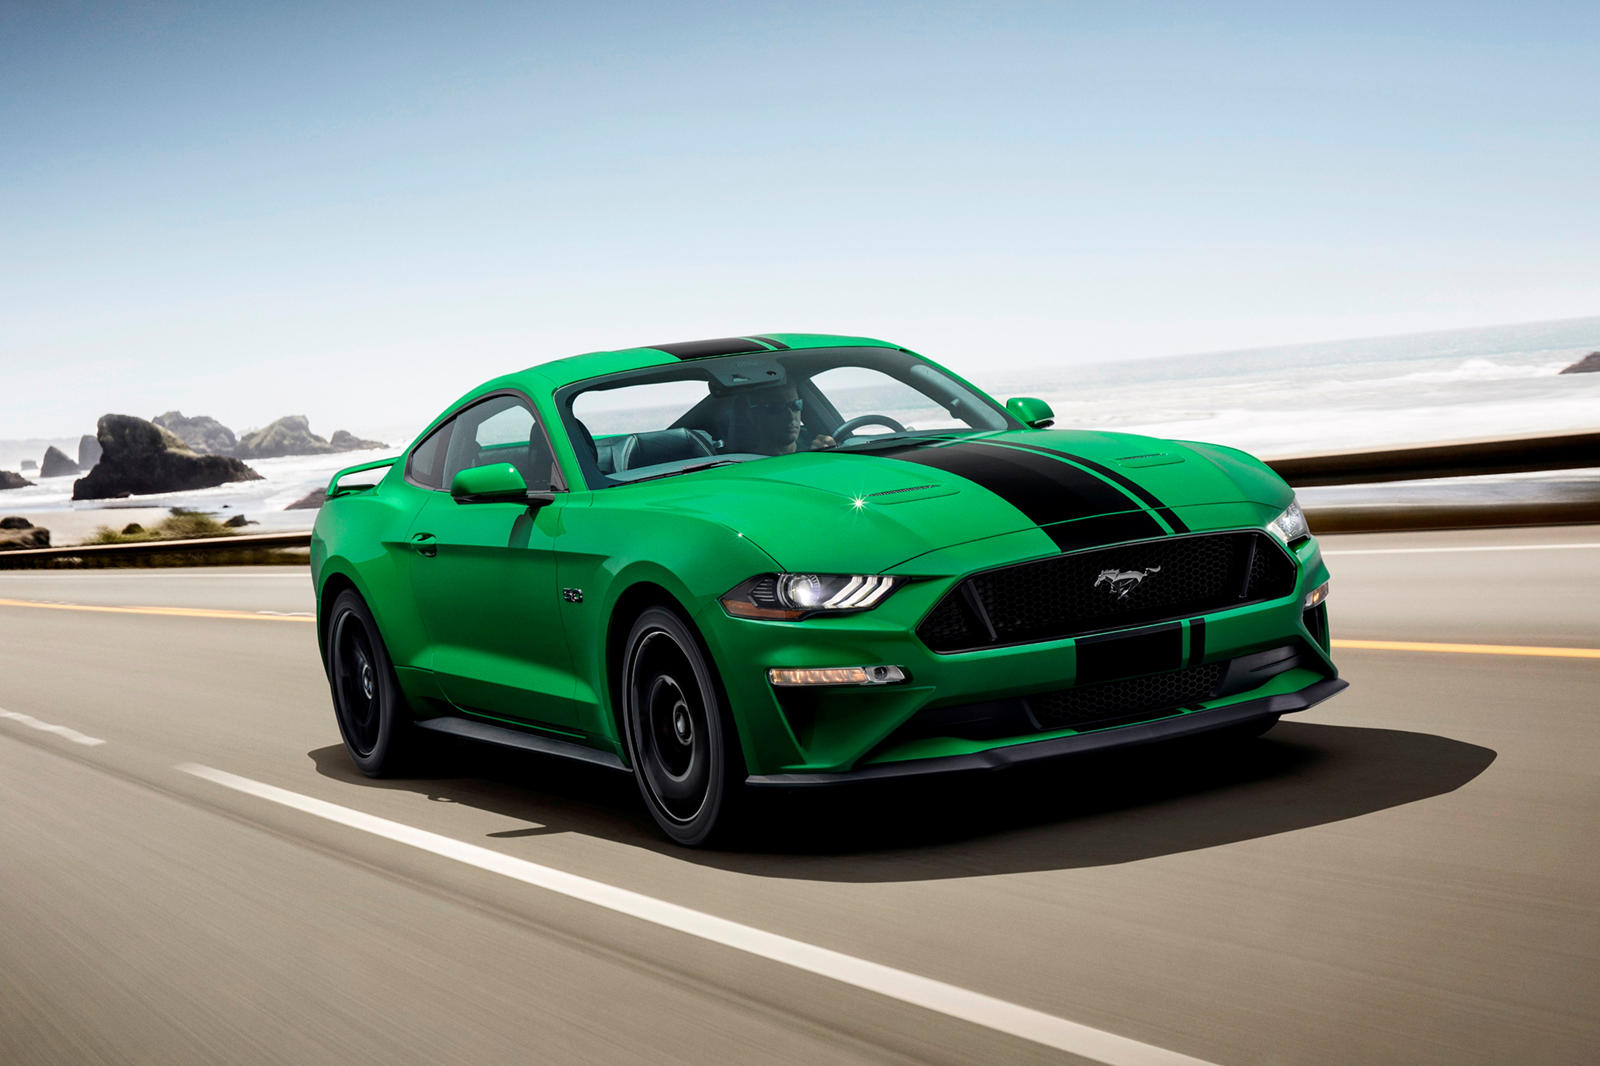 2021 Ford Mustang Coupe: Review, Trims, Specs, Price, New Interior Features, Exterior Design ...